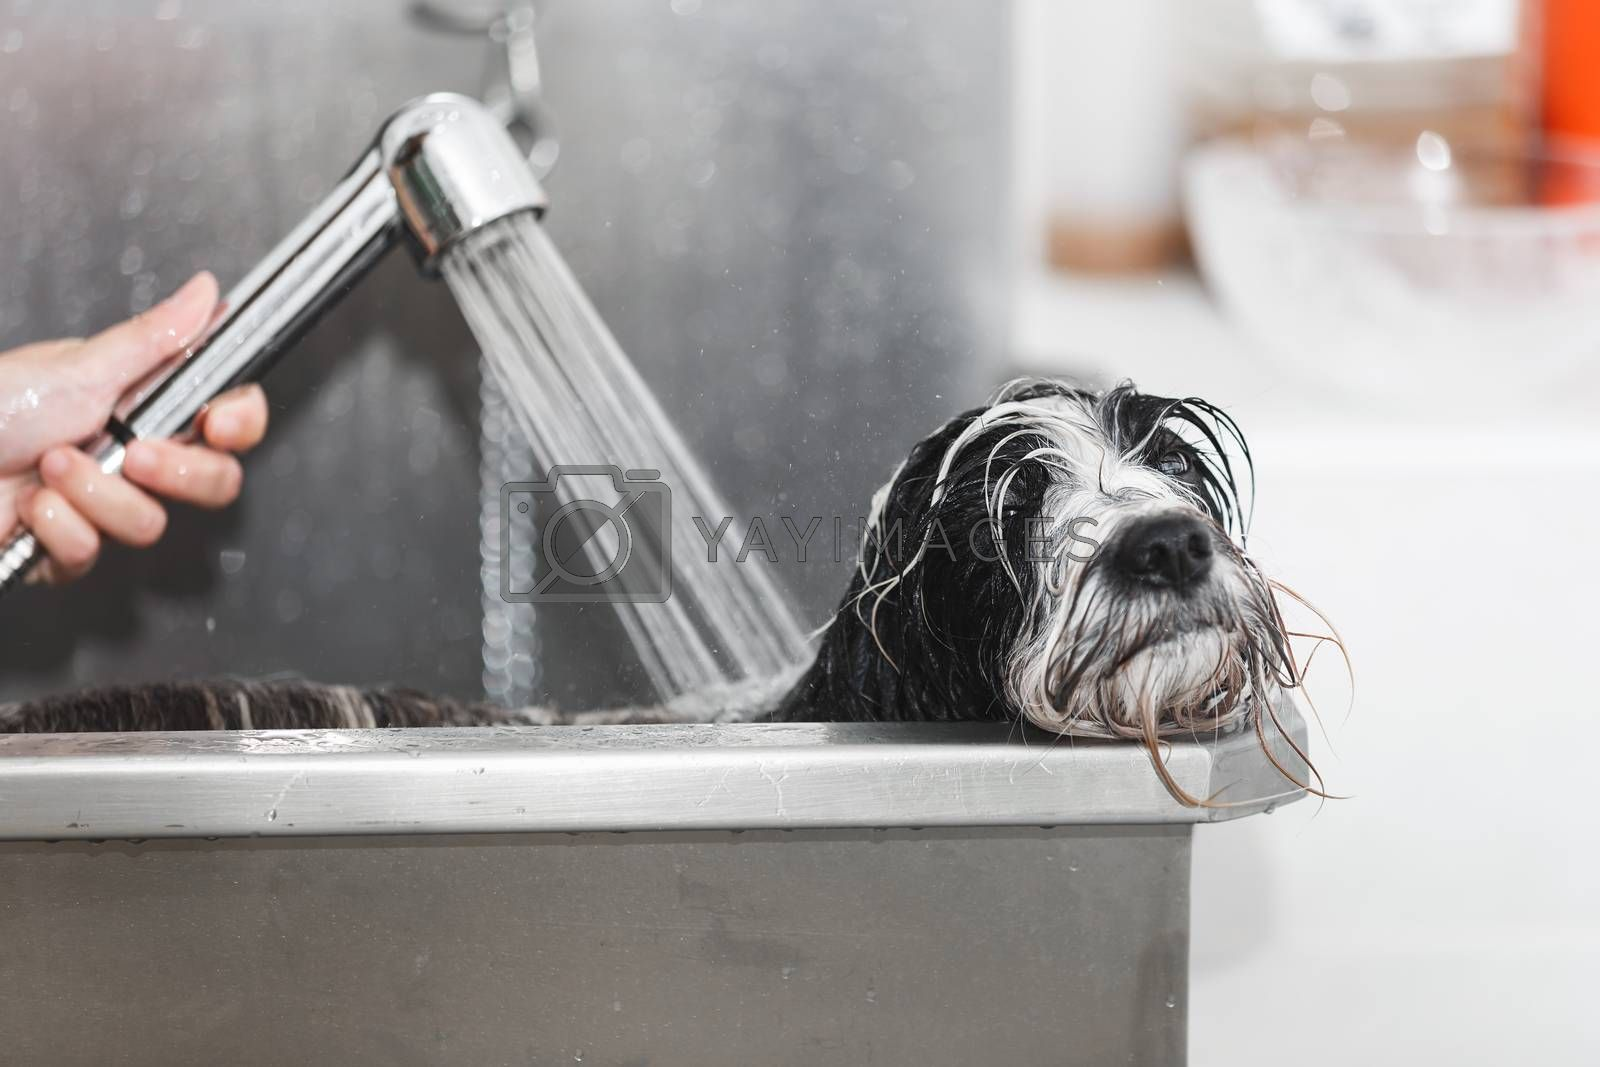 Tibetan terrier dog gets a bath at the groomer in stainless steel bathtub, selective focus